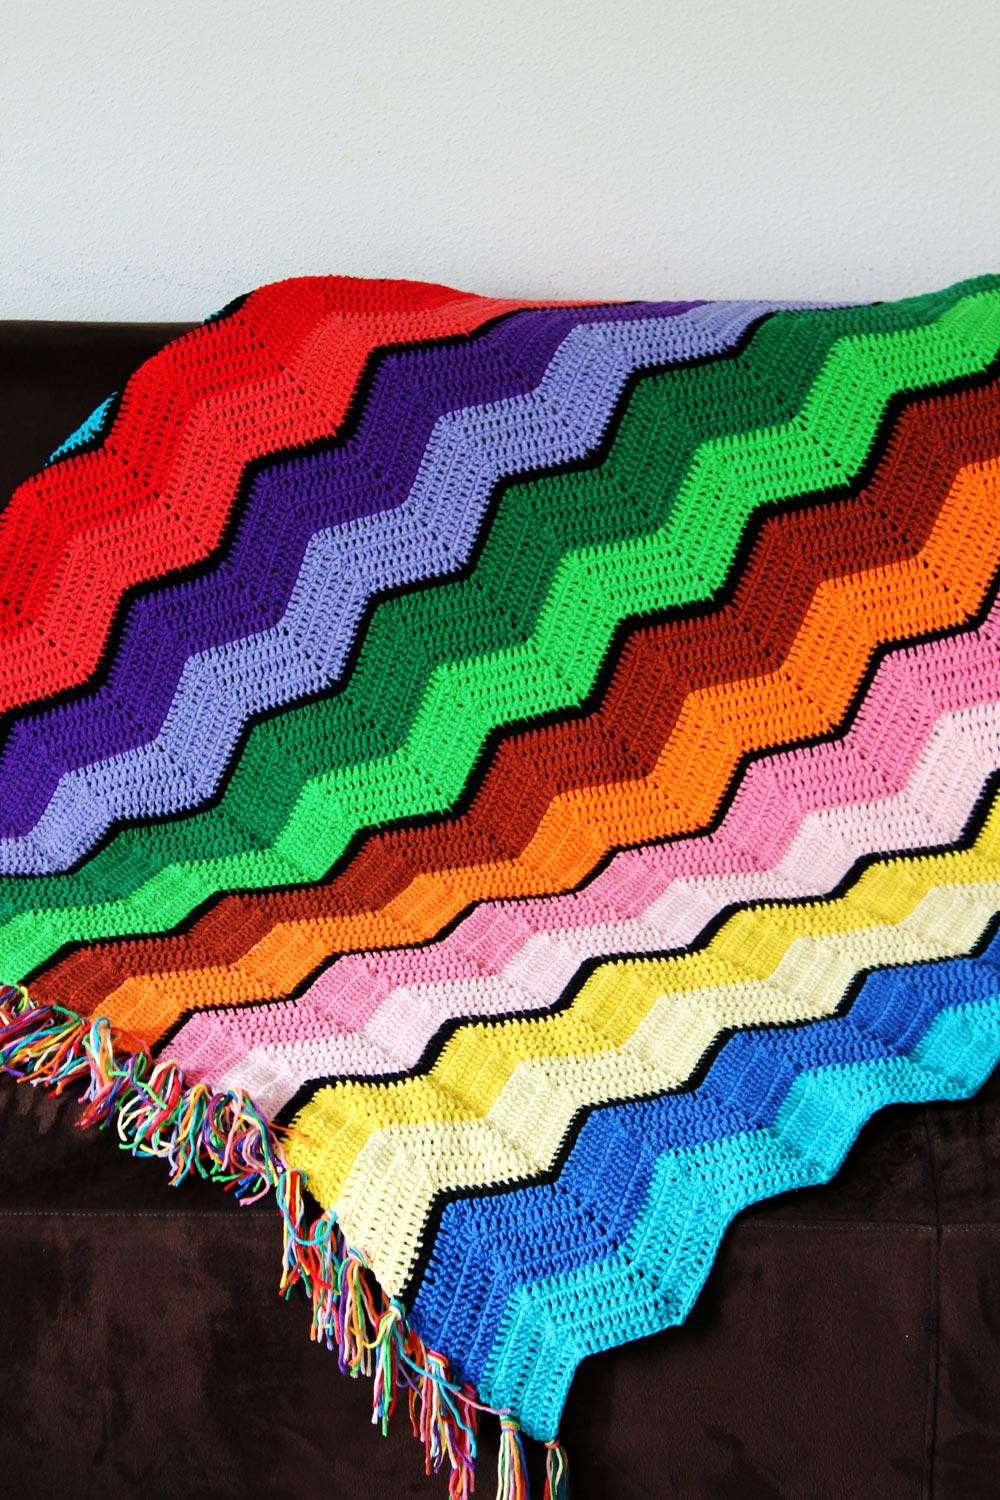 Crochet Afghan Patterns with Pictures Elegant 51 Free Crochet Blanket Patterns for Beginners Of Gorgeous 43 Photos Crochet Afghan Patterns with Pictures